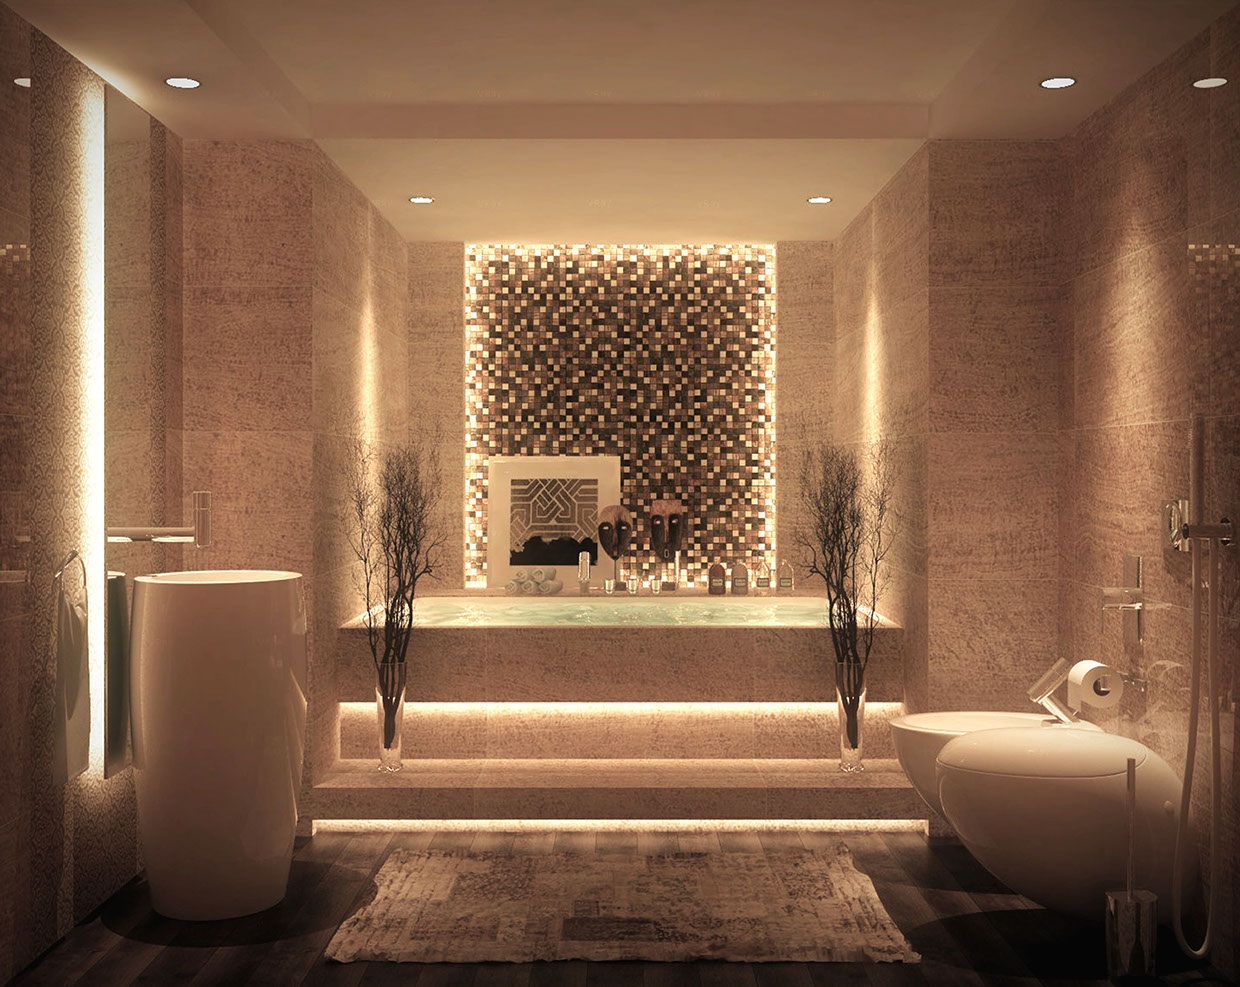 Luxurious bathrooms with stunning design details - Decore salle de bain 2014 ...